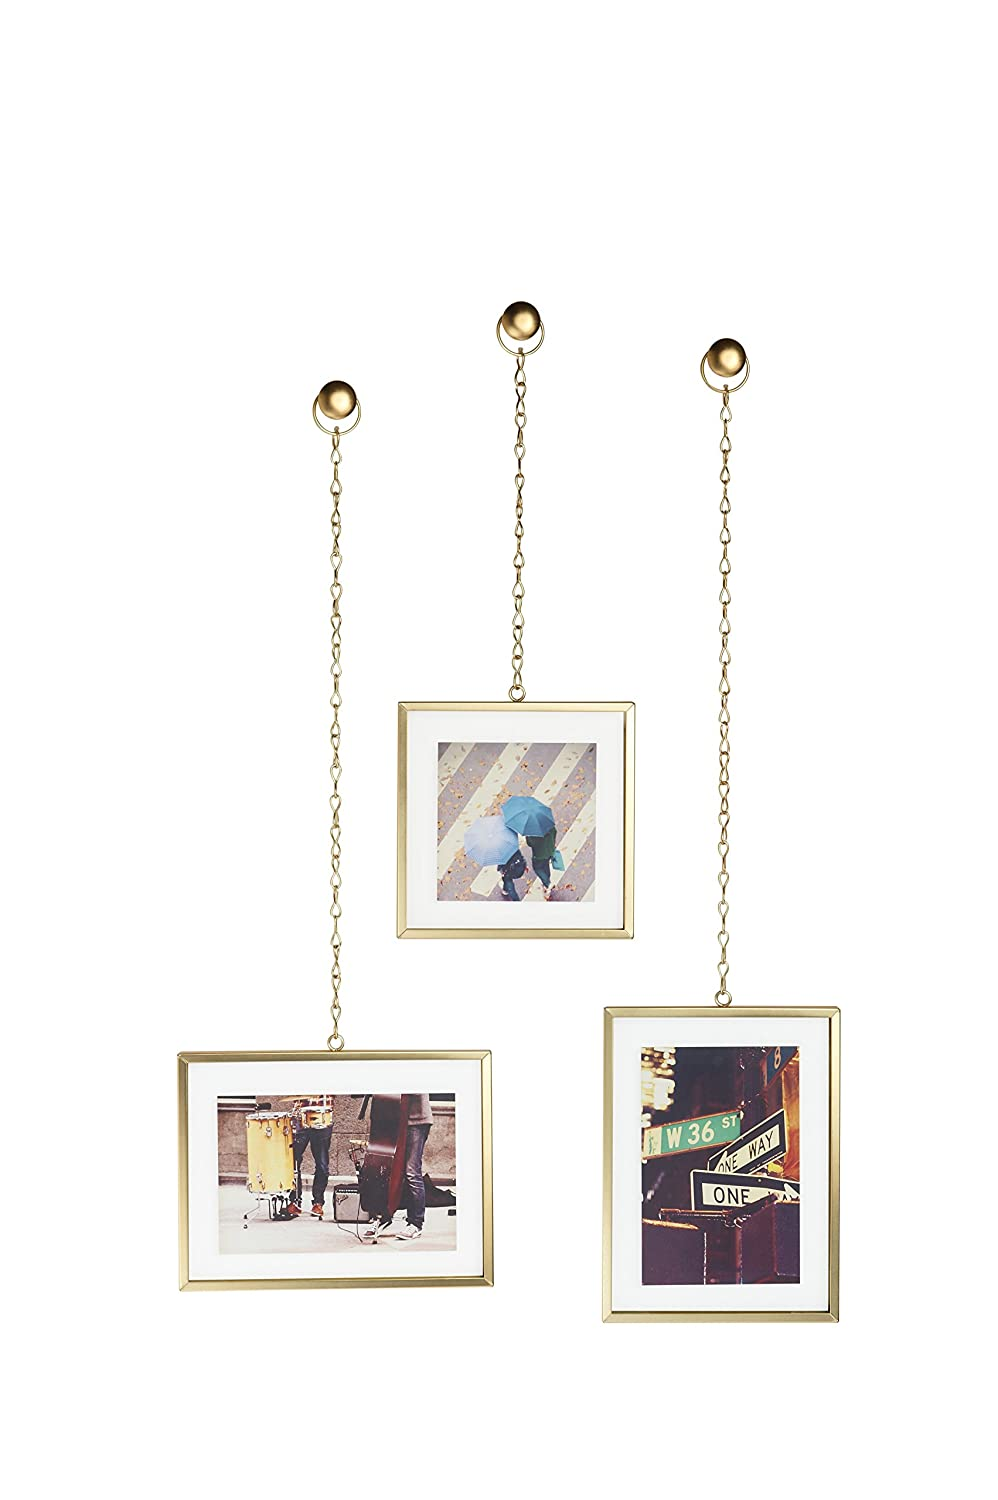 Umbra Fotochain Photo Display, Set of 3 Matte Brass